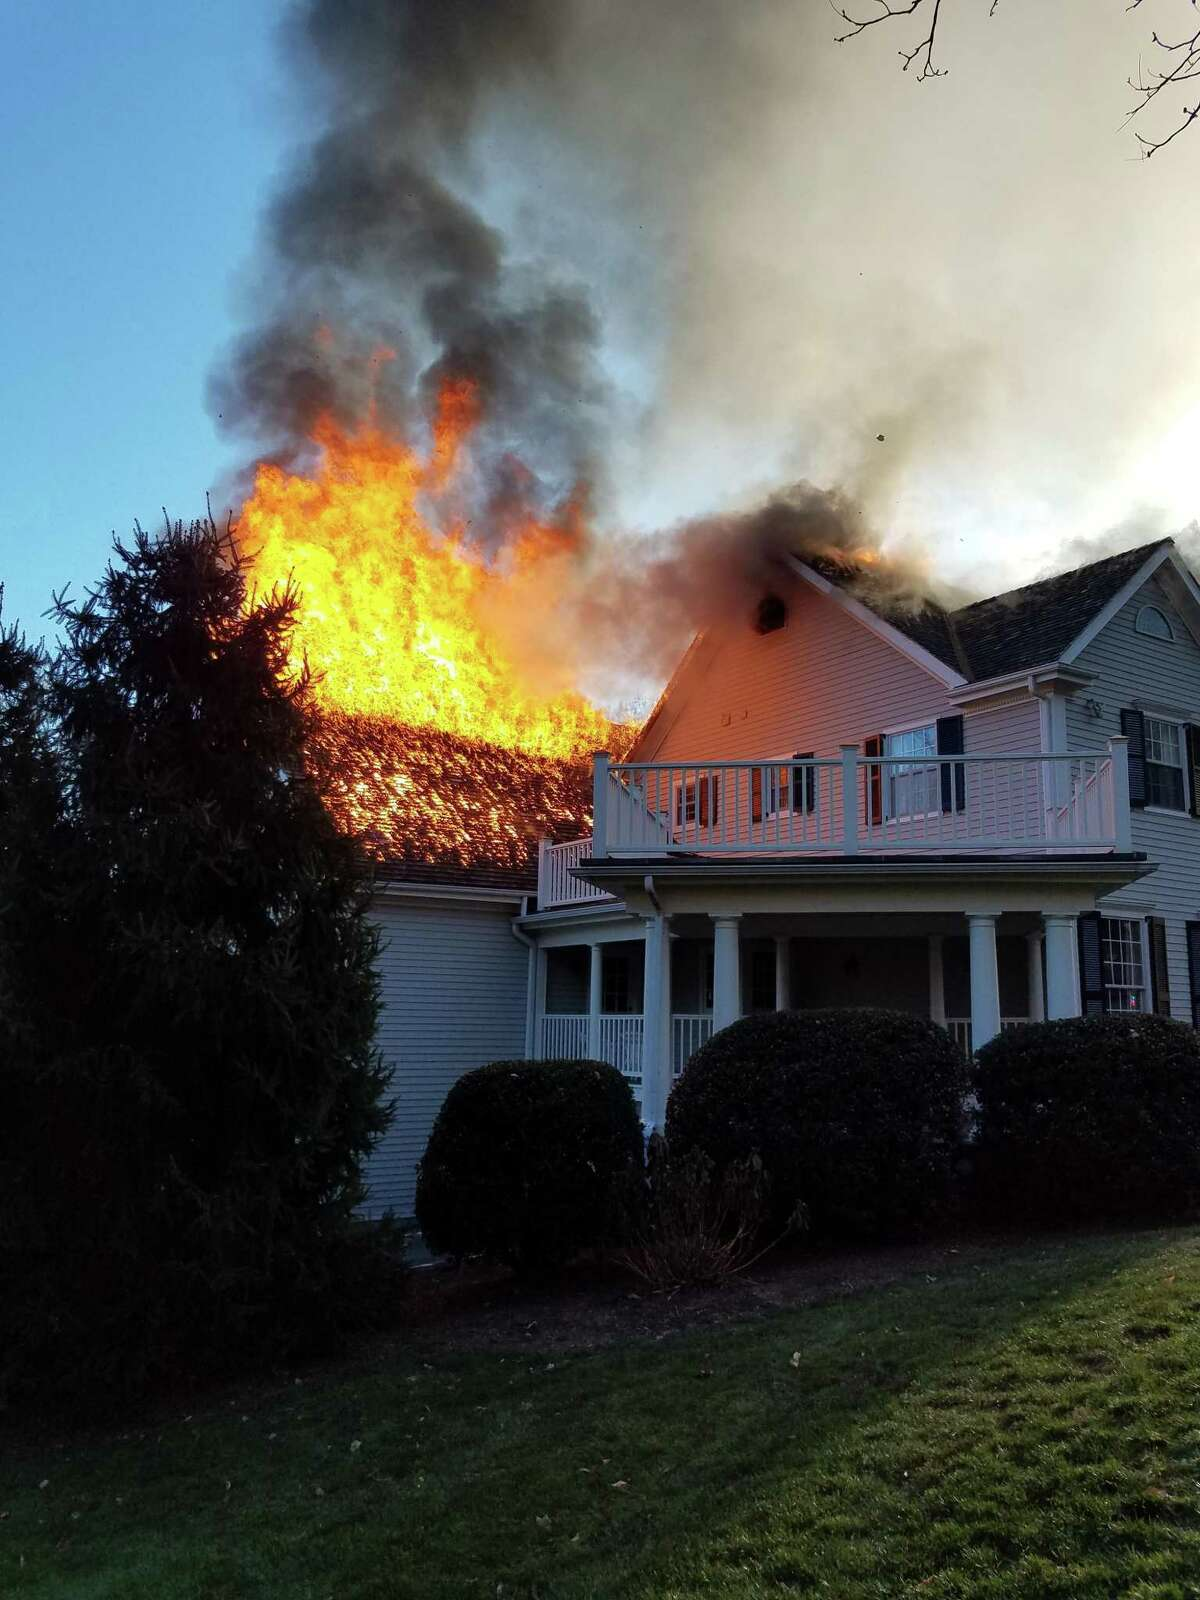 Fire rages through a mansion on Dan's Highway in New Canaan Saturday afternoon. Firefighters from New Canaan, Norwalk, Wilton as well as Pound Ridge, N.Y., South Salem, N.Y. and Vista, N.Y. fought the blaze for at least 90 minutes before bringing it under control. They continued to watch for flare-ups during the night.